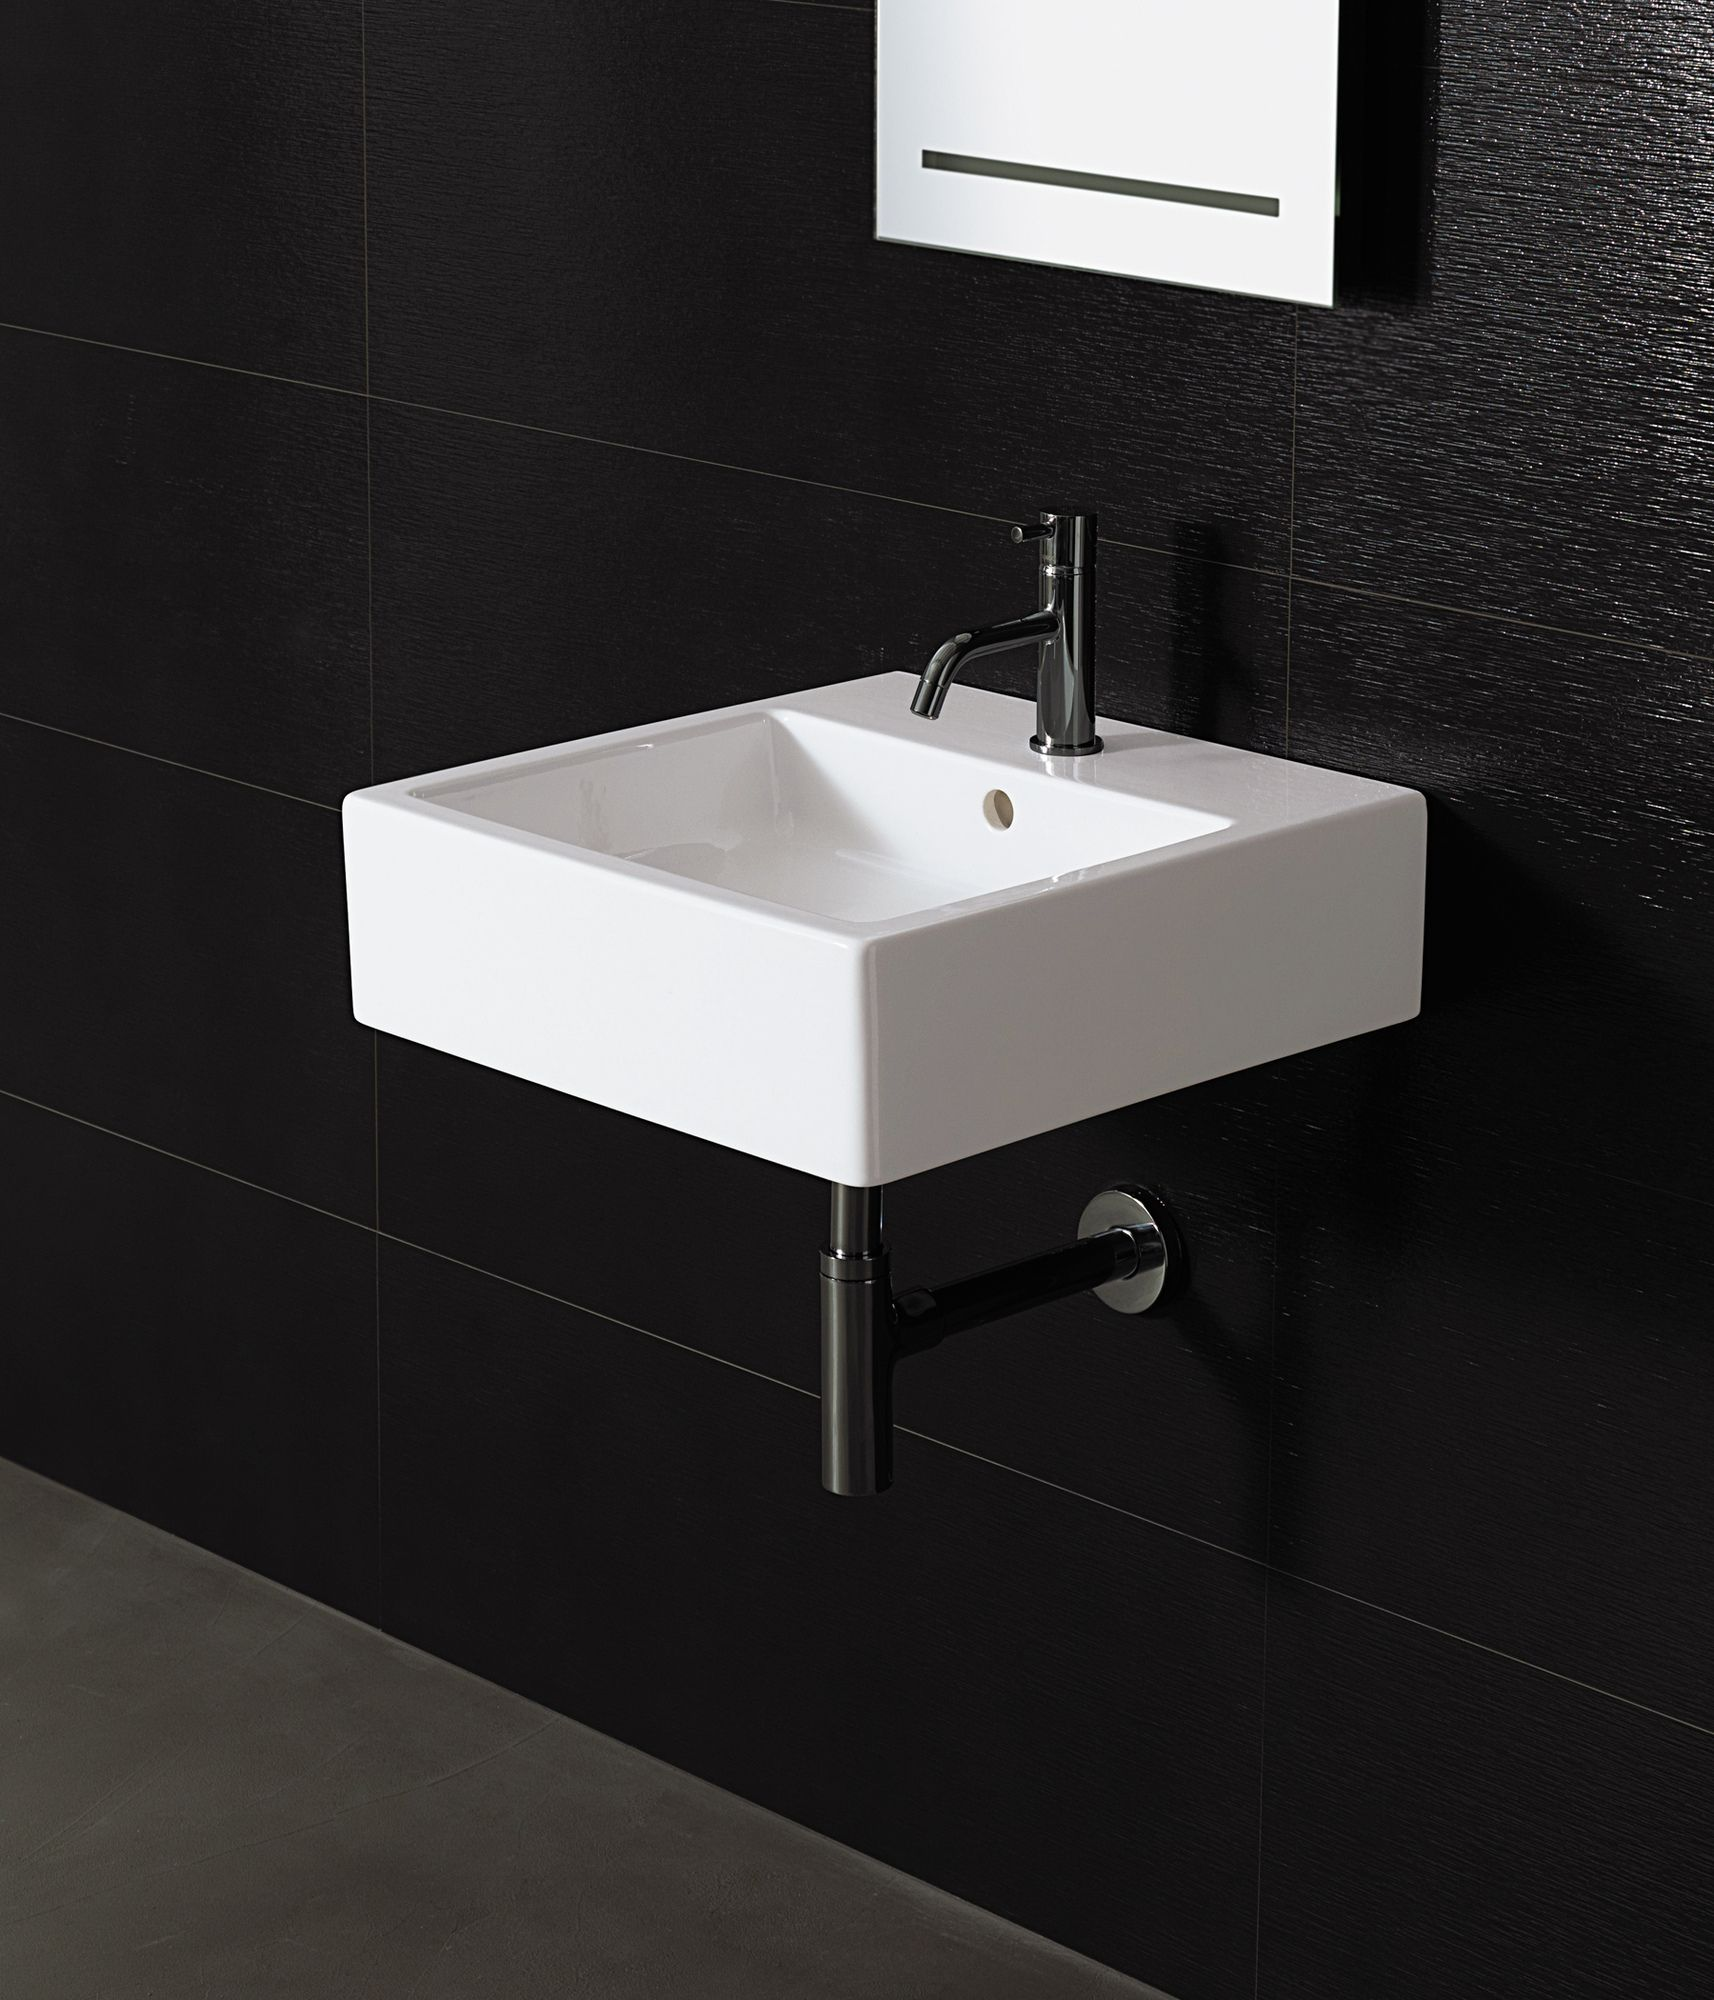 Bissonnet Area Boutique Ice Large Square Ceramic Bathroom Sink In White Wall Mounted Bathroom Sinks Ceramic Bathroom Sink Contemporary Bathroom Sinks